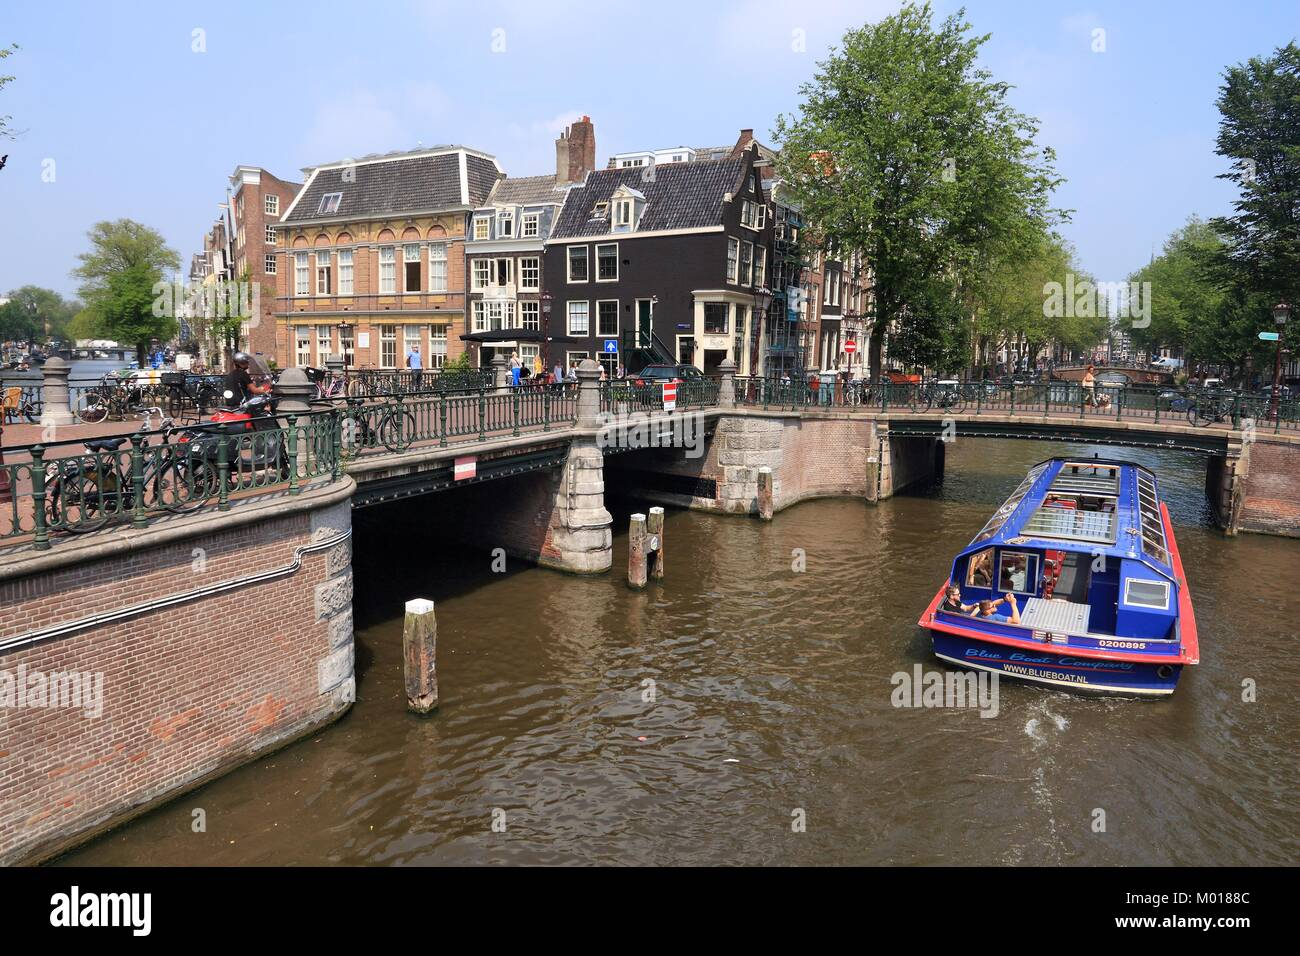 AMSTERDAM, NETHERLANDS - JULY 7, 2017: People visit Leidsegracht and Prinsengracht canal crossing in Amsterdam, - Stock Image